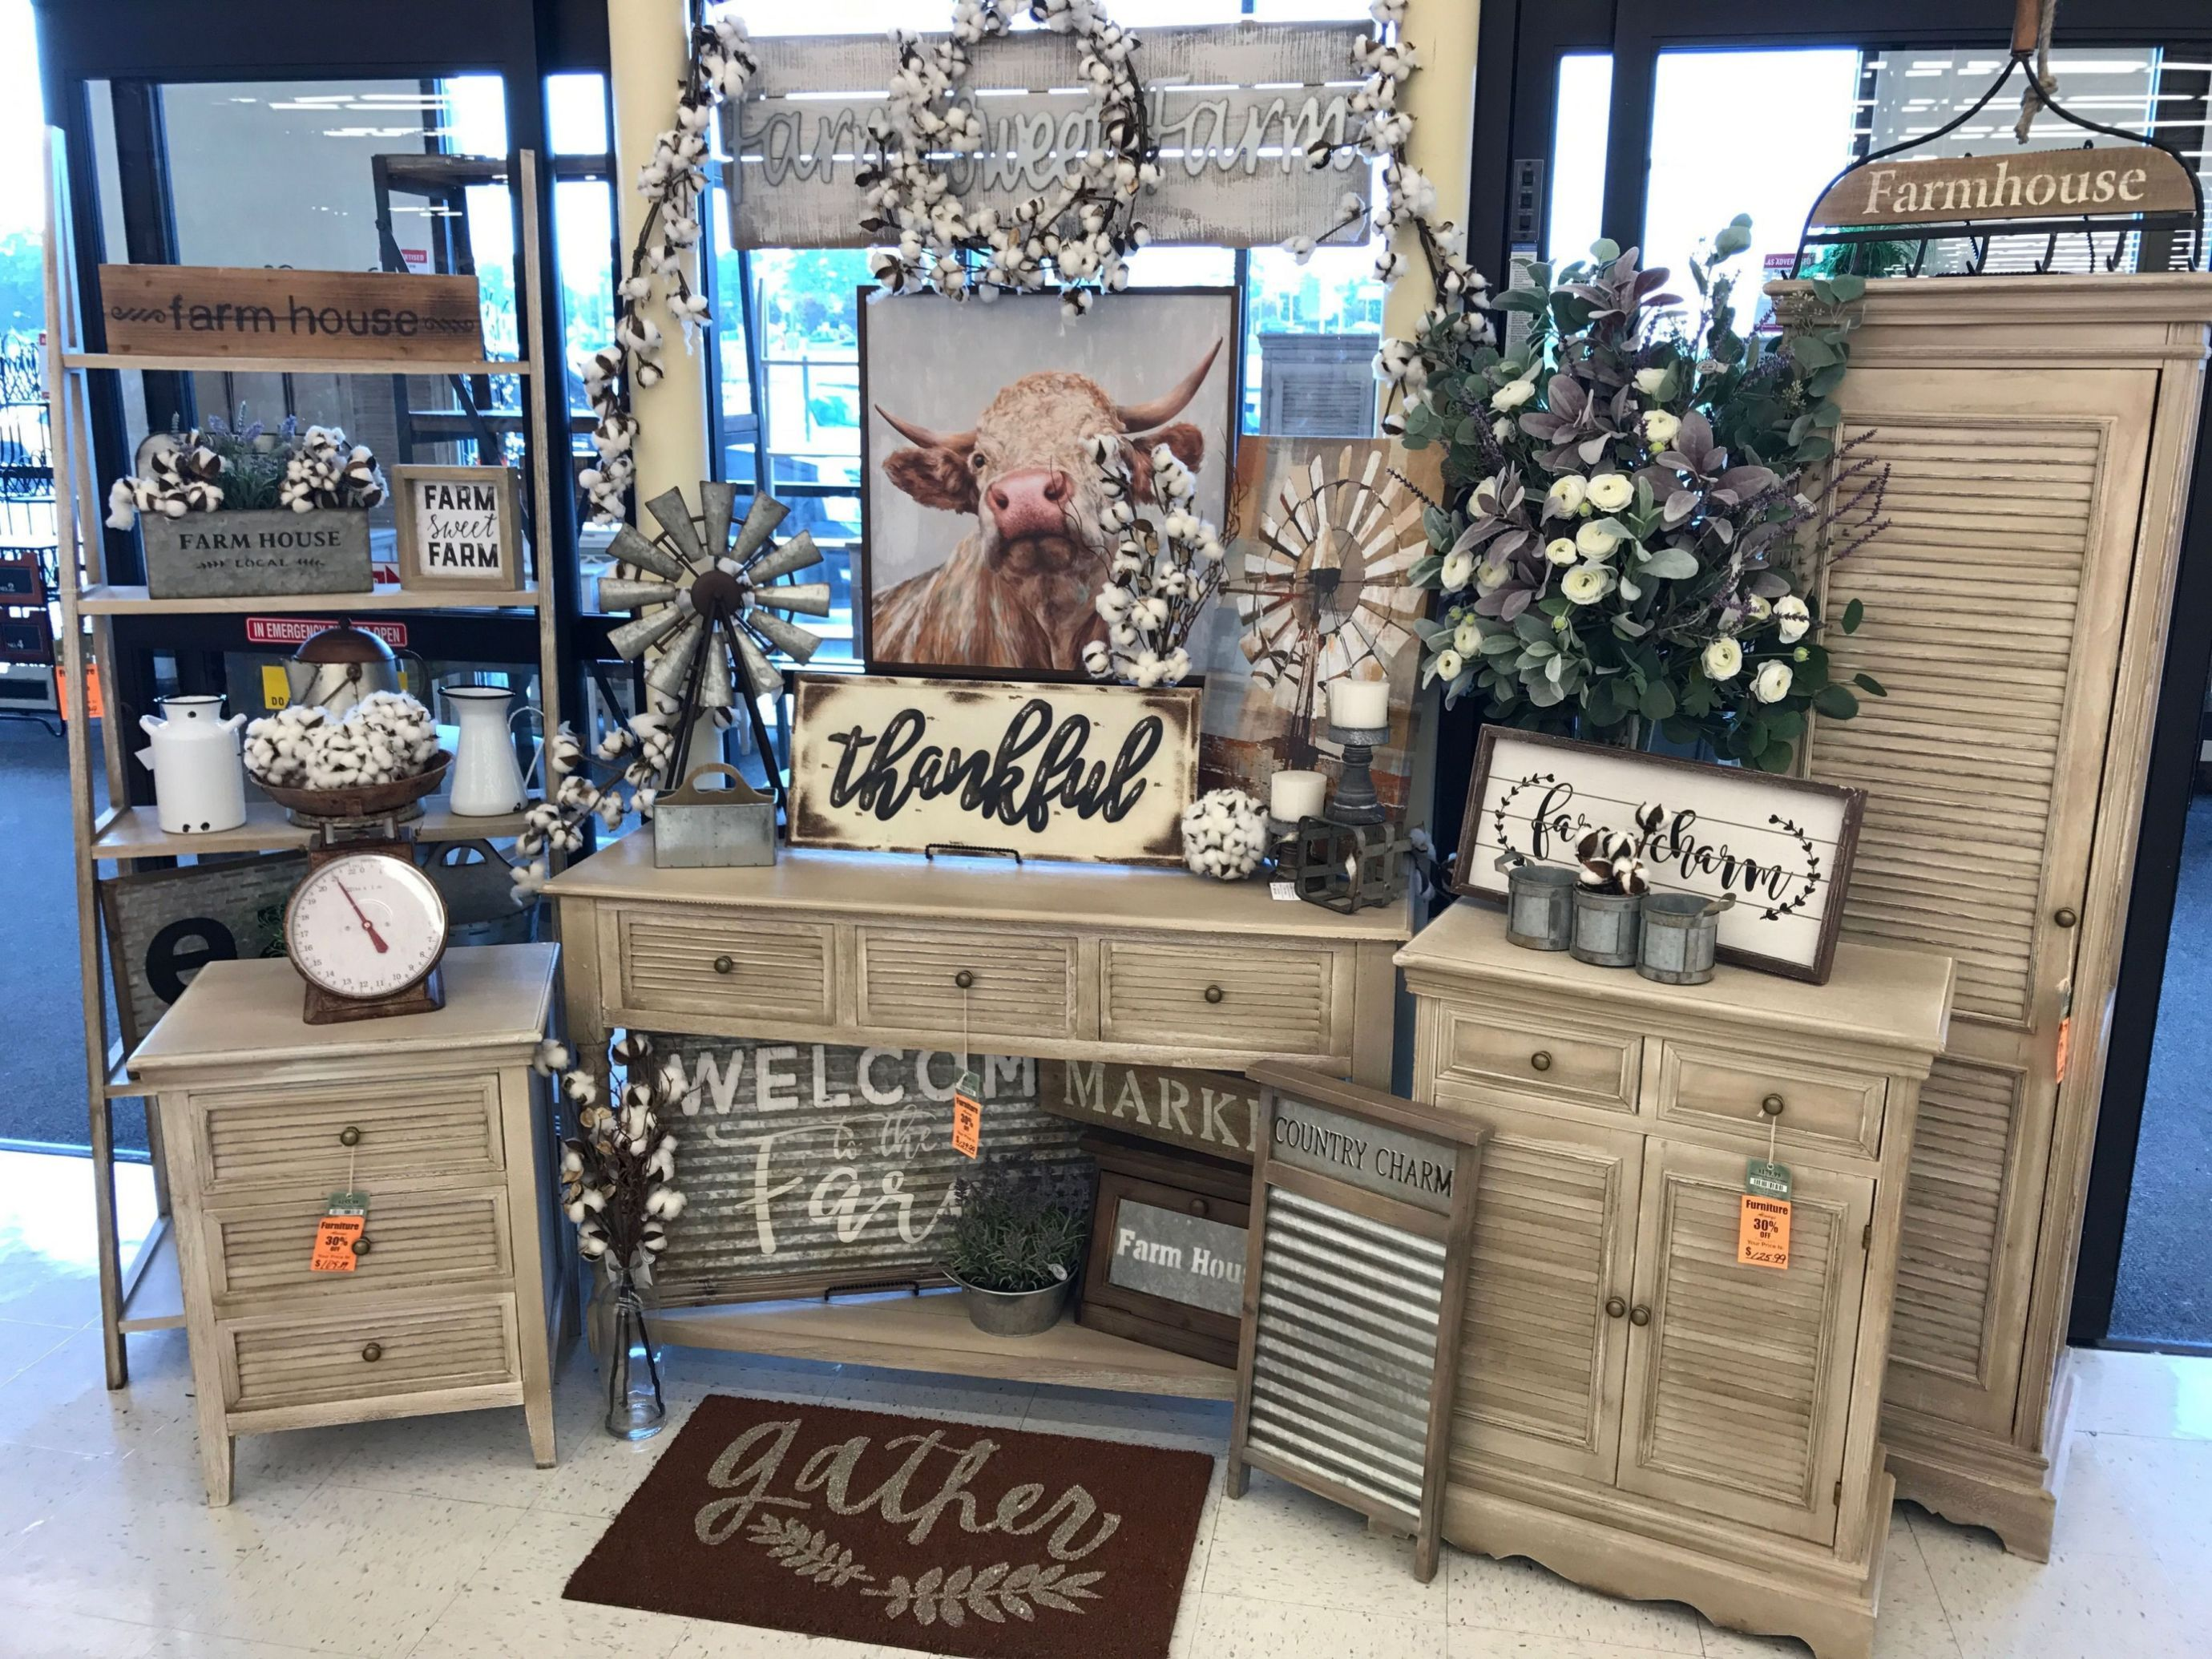 36 hobby lobby farmhouse decor ideas hobby lobby decor kitchen decor hobby lobby hobby lobby on kitchen decor themes hobby lobby id=97538